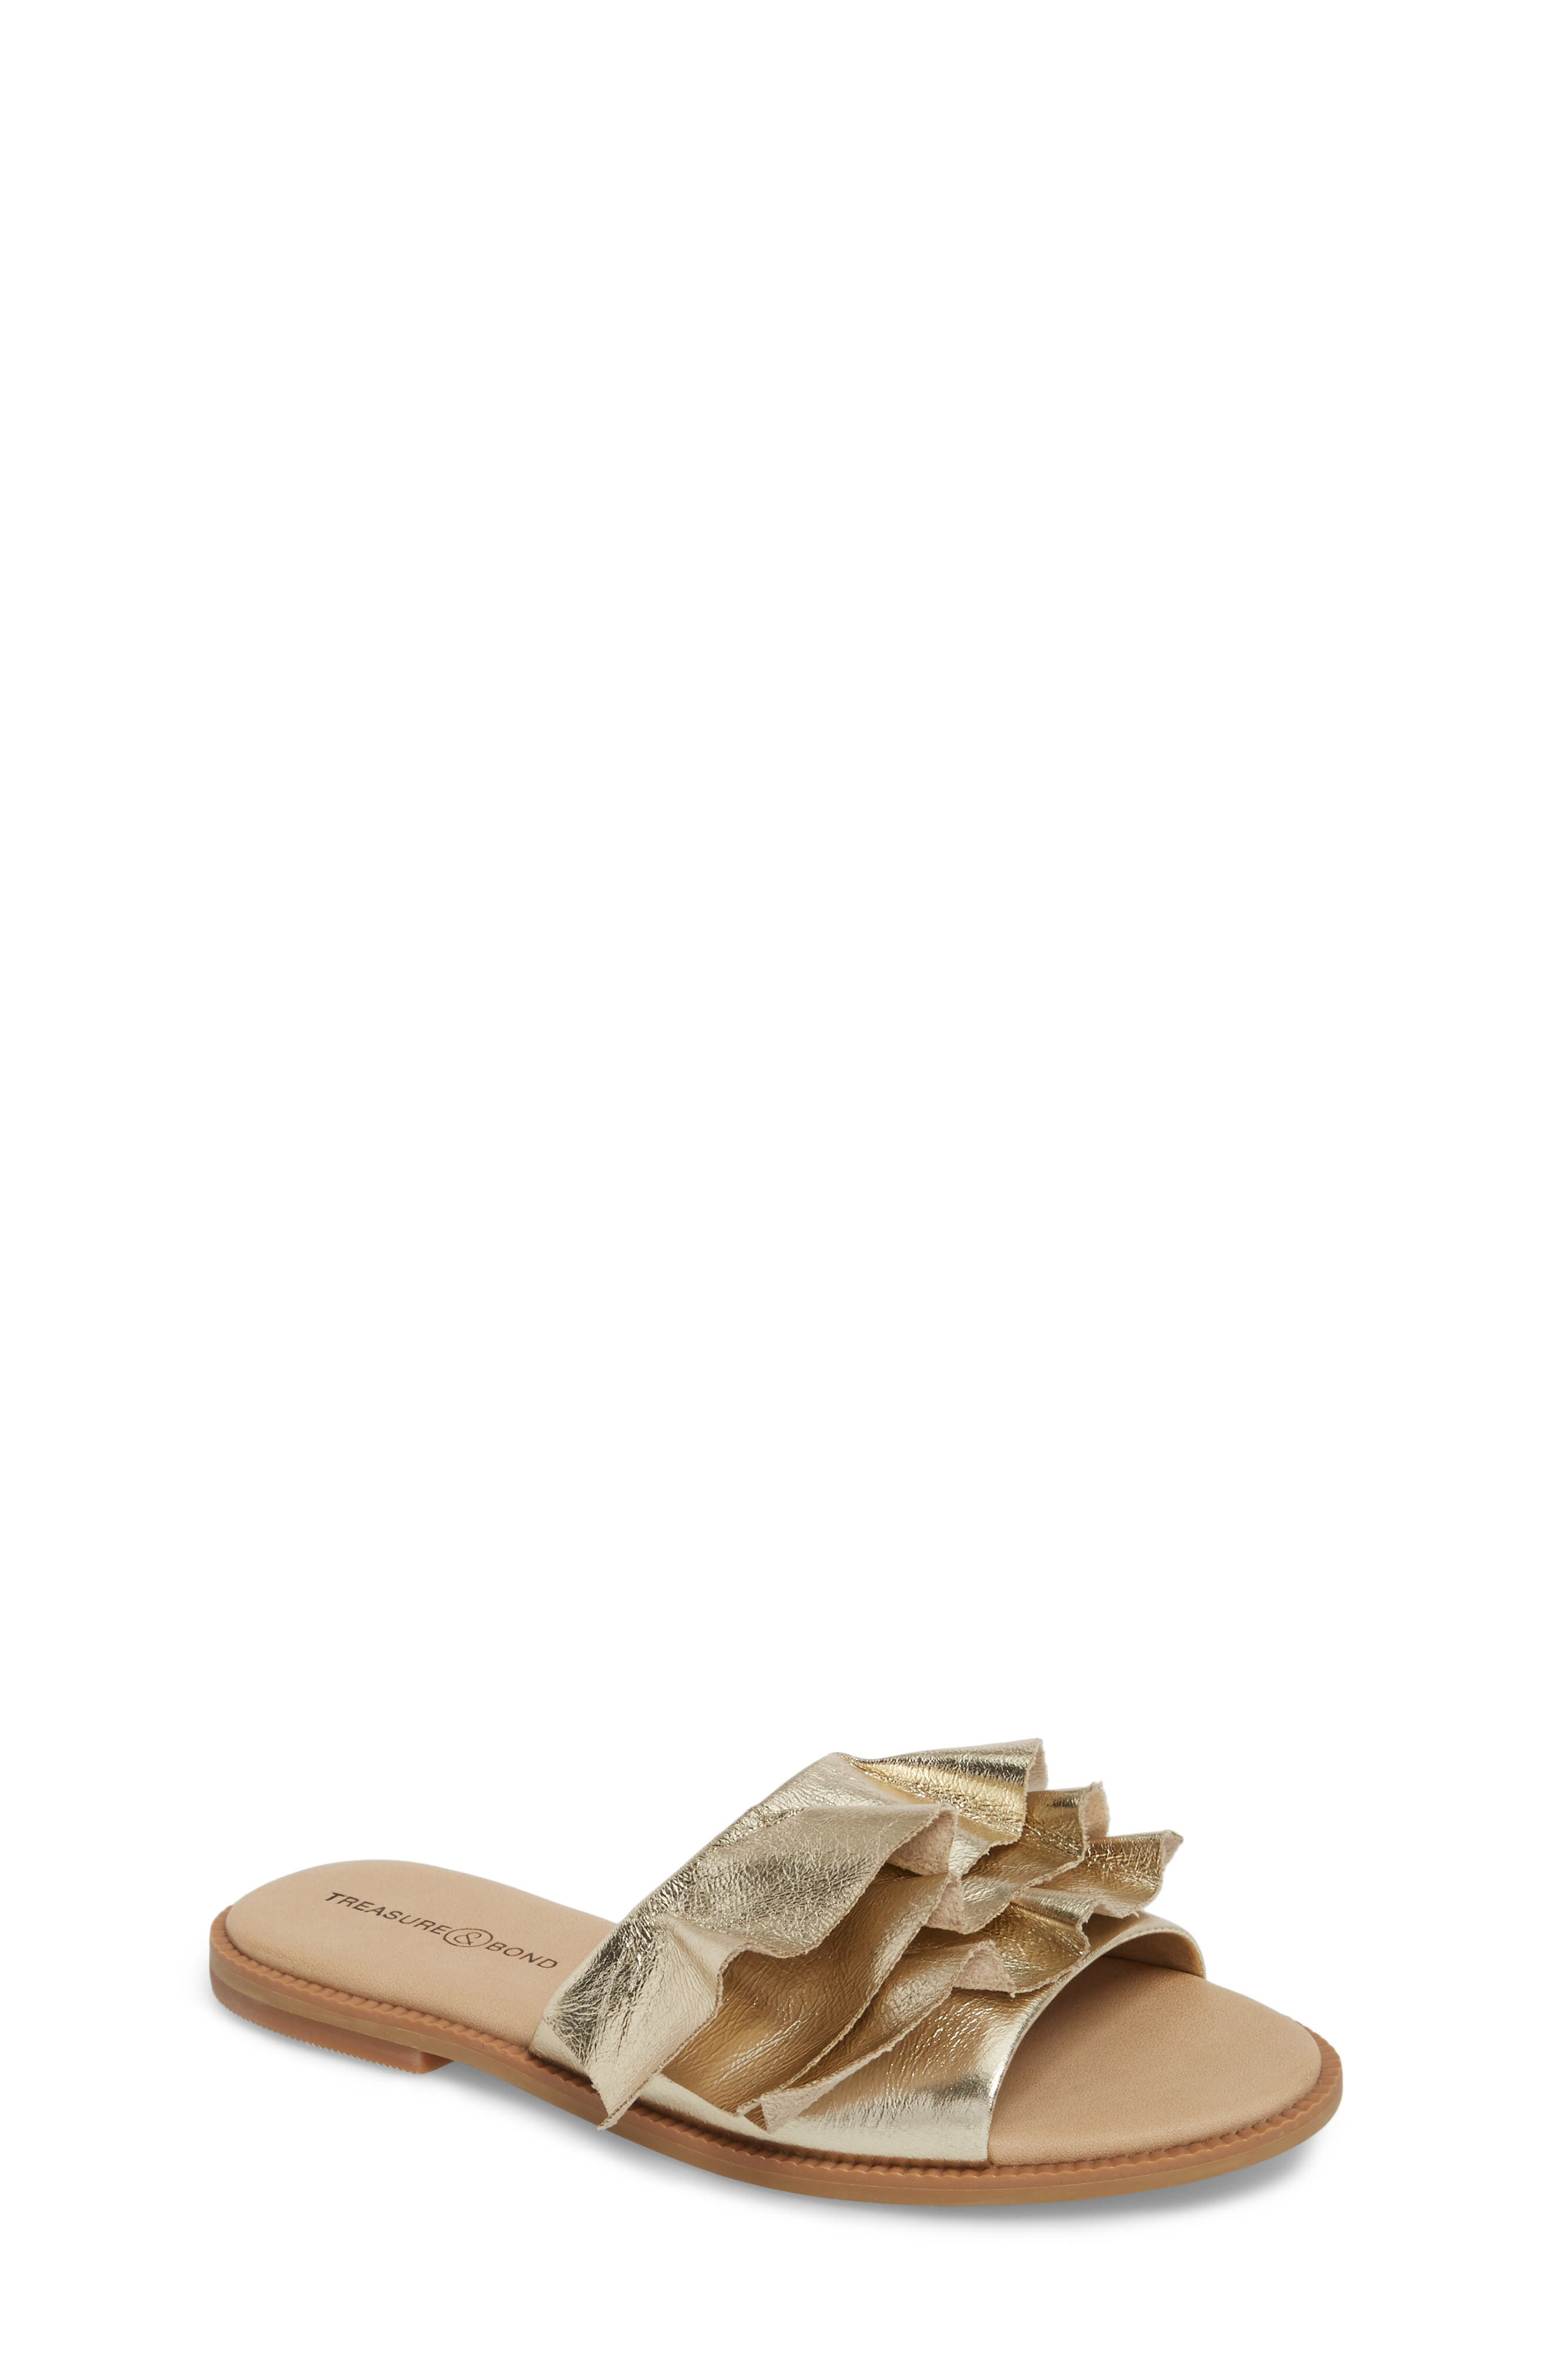 Ruby Ruffled Slide Sandal,                             Main thumbnail 1, color,                             Gold Crackle Faux Leather